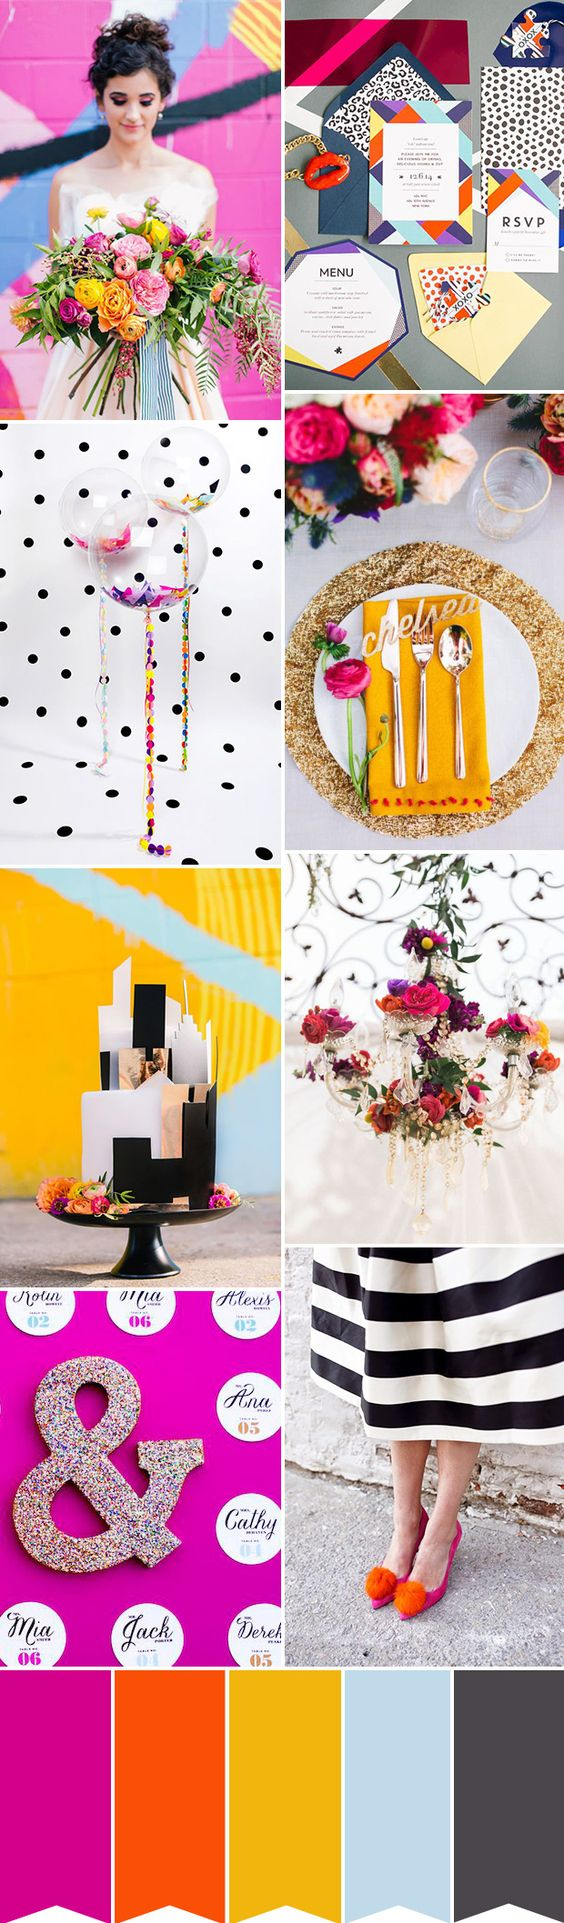 Monochrome and color pop wedding inspiration with a Kate Spade twist | www.onefabday.com